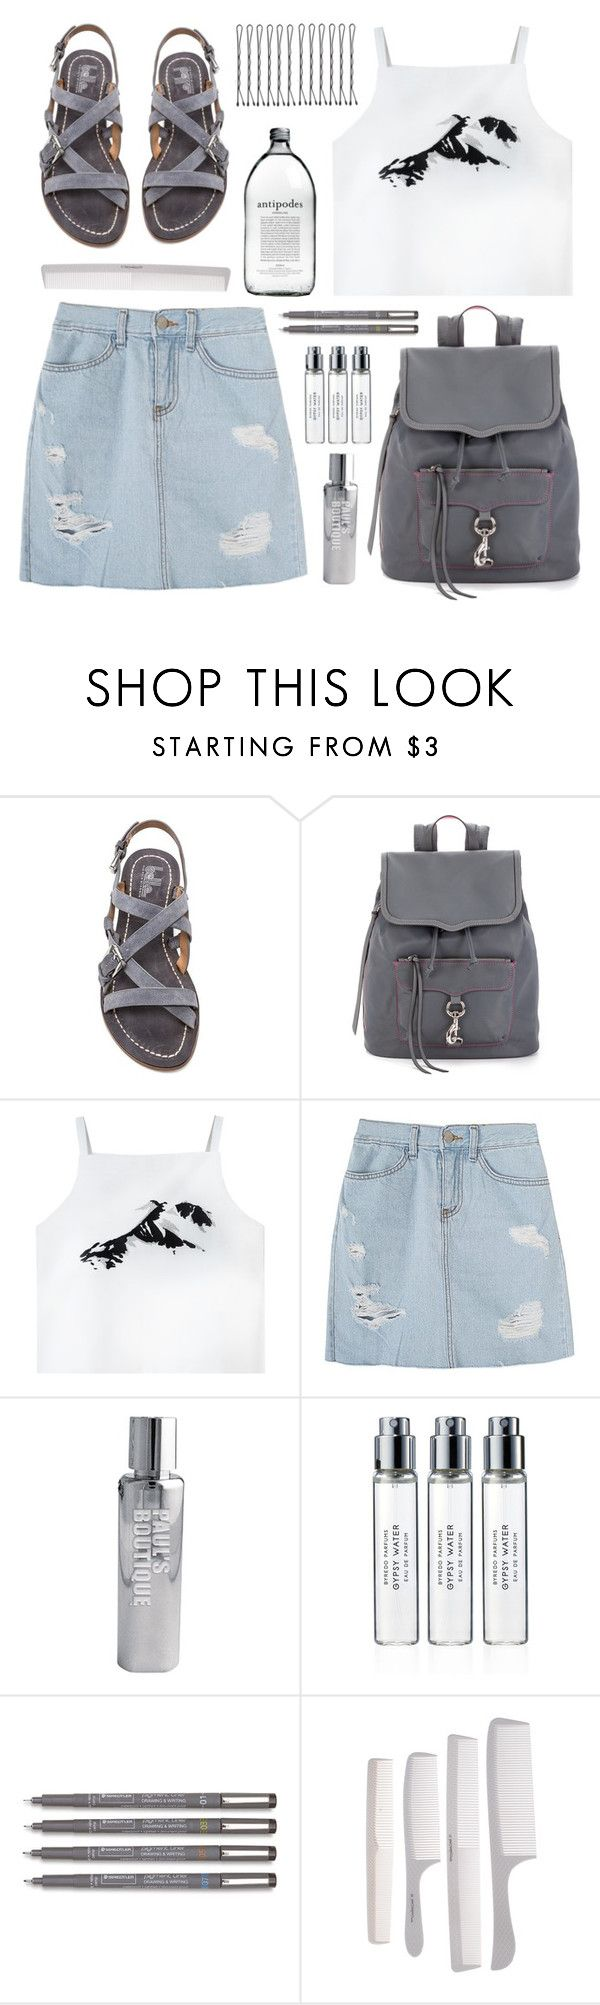 """Acquaintences"" by dana-rachel ❤ liked on Polyvore featuring belle by Sigerson Morrison, Rebecca Minkoff, Paul's Boutique and Byredo"